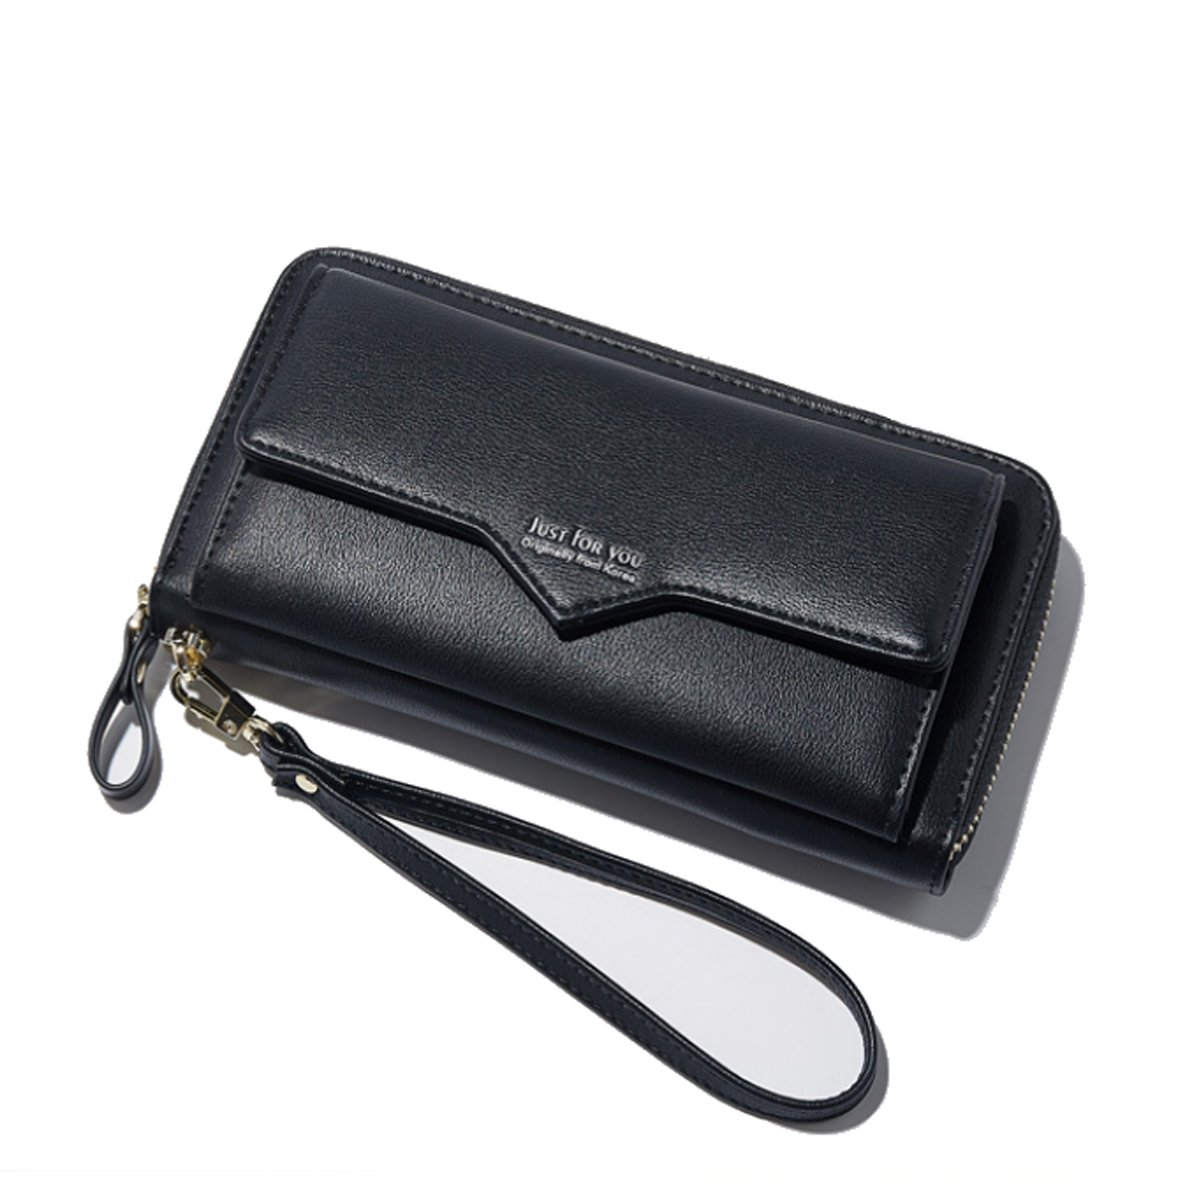 Women Leather Wallet Fashion Clutch Card Holder Purse Zip Multi-functional Handbag Wristlet Strap Front Pocket Smart Phone Black